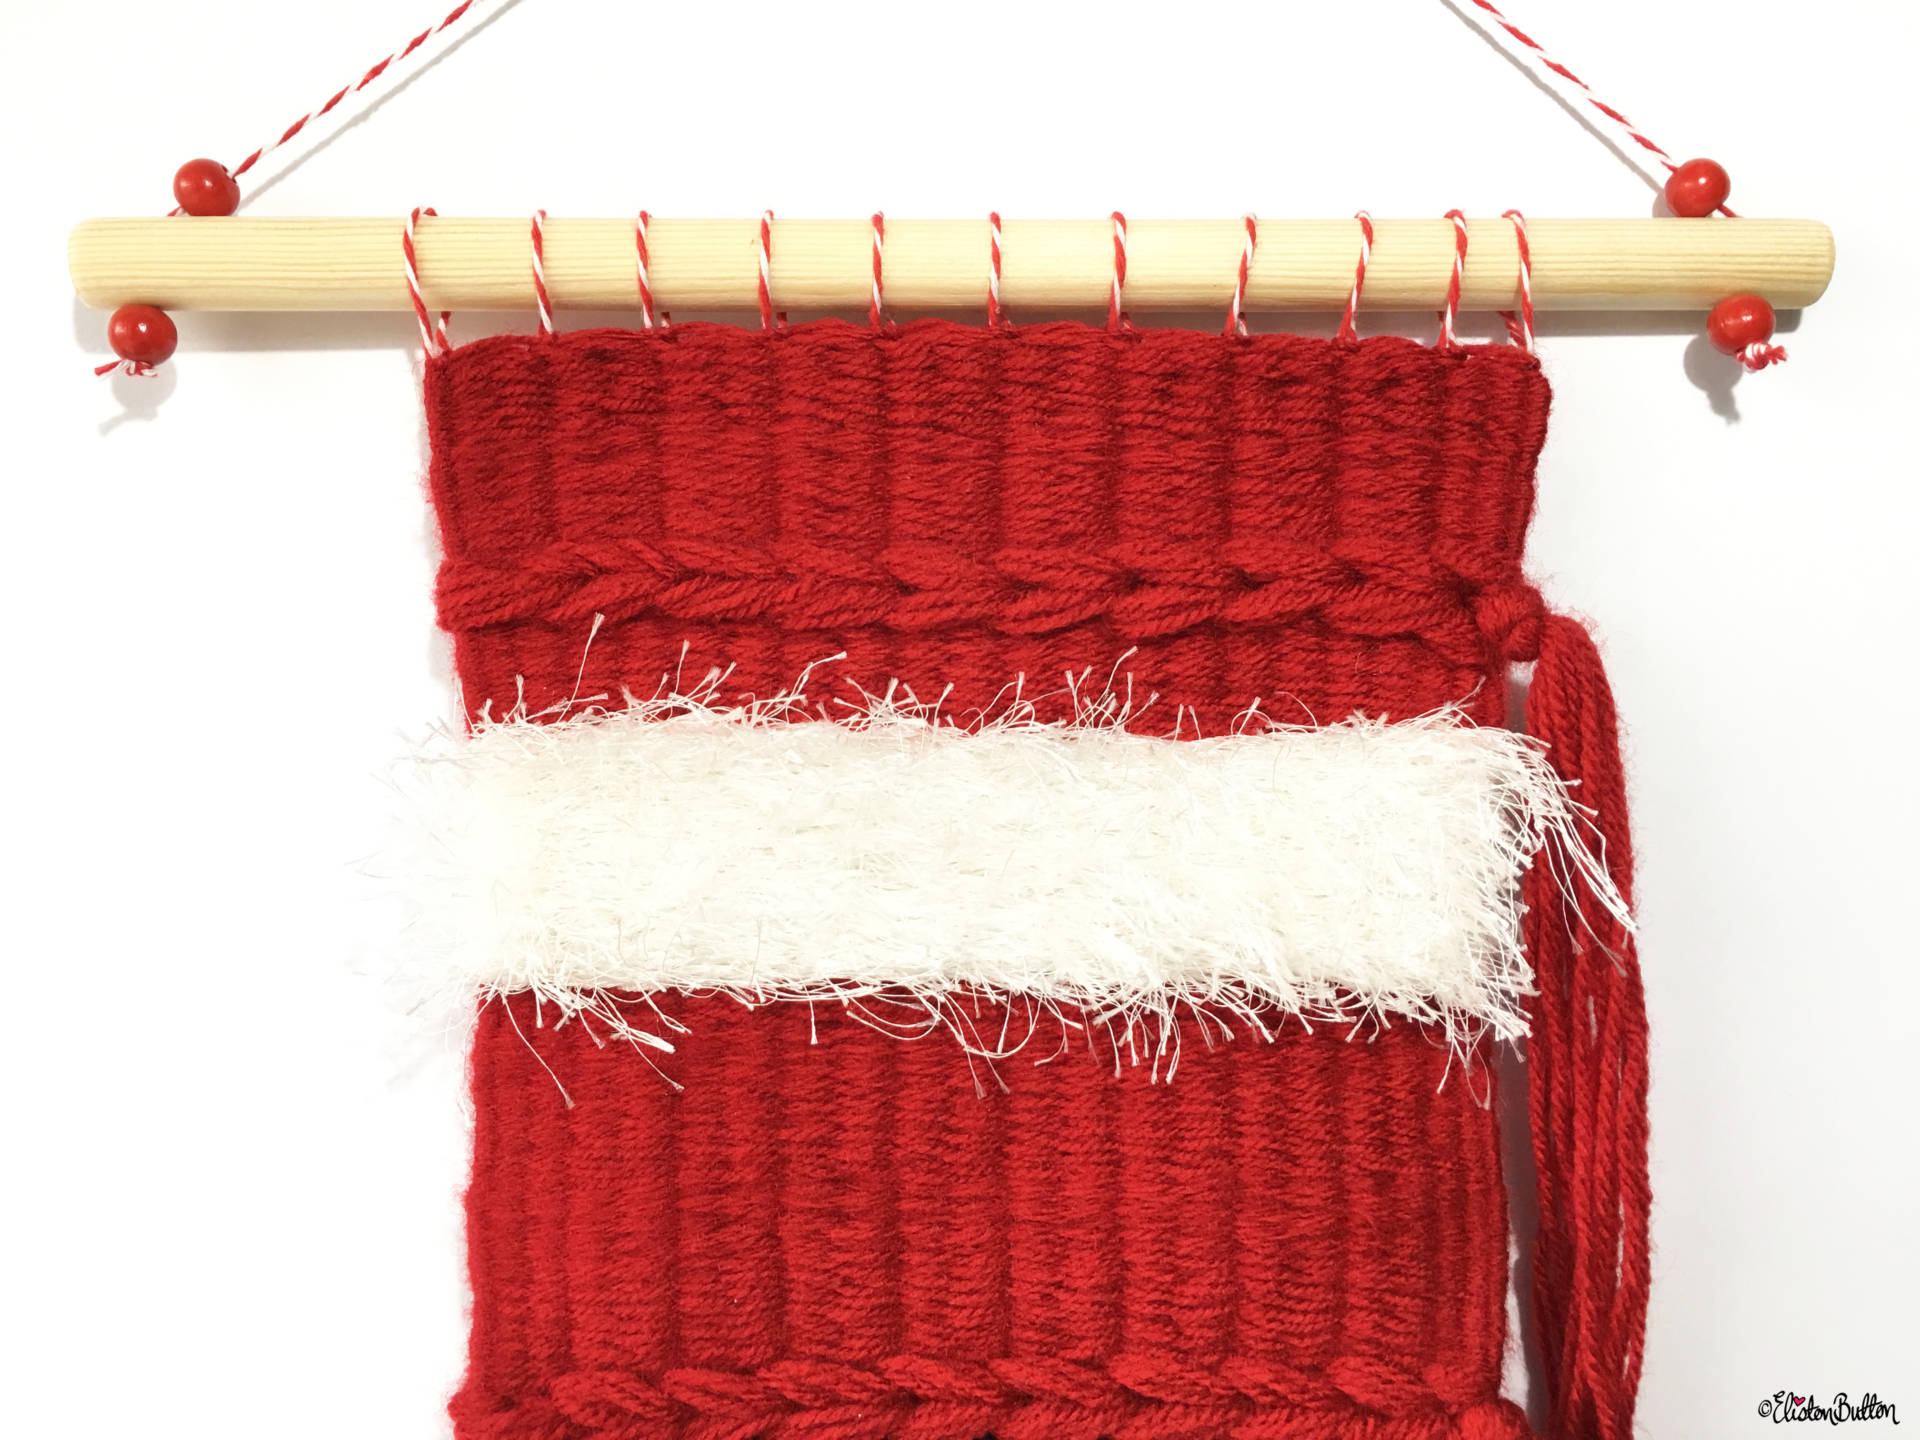 Festive Woven Wall Hanging - Top Section - Red with White Fluffy Yarn - Create 30 - No. 10 - Festive Woven Wall Hanging at www.elistonbutton.com - Eliston Button - That Crafty Kid – Art, Design, Craft & Adventure.